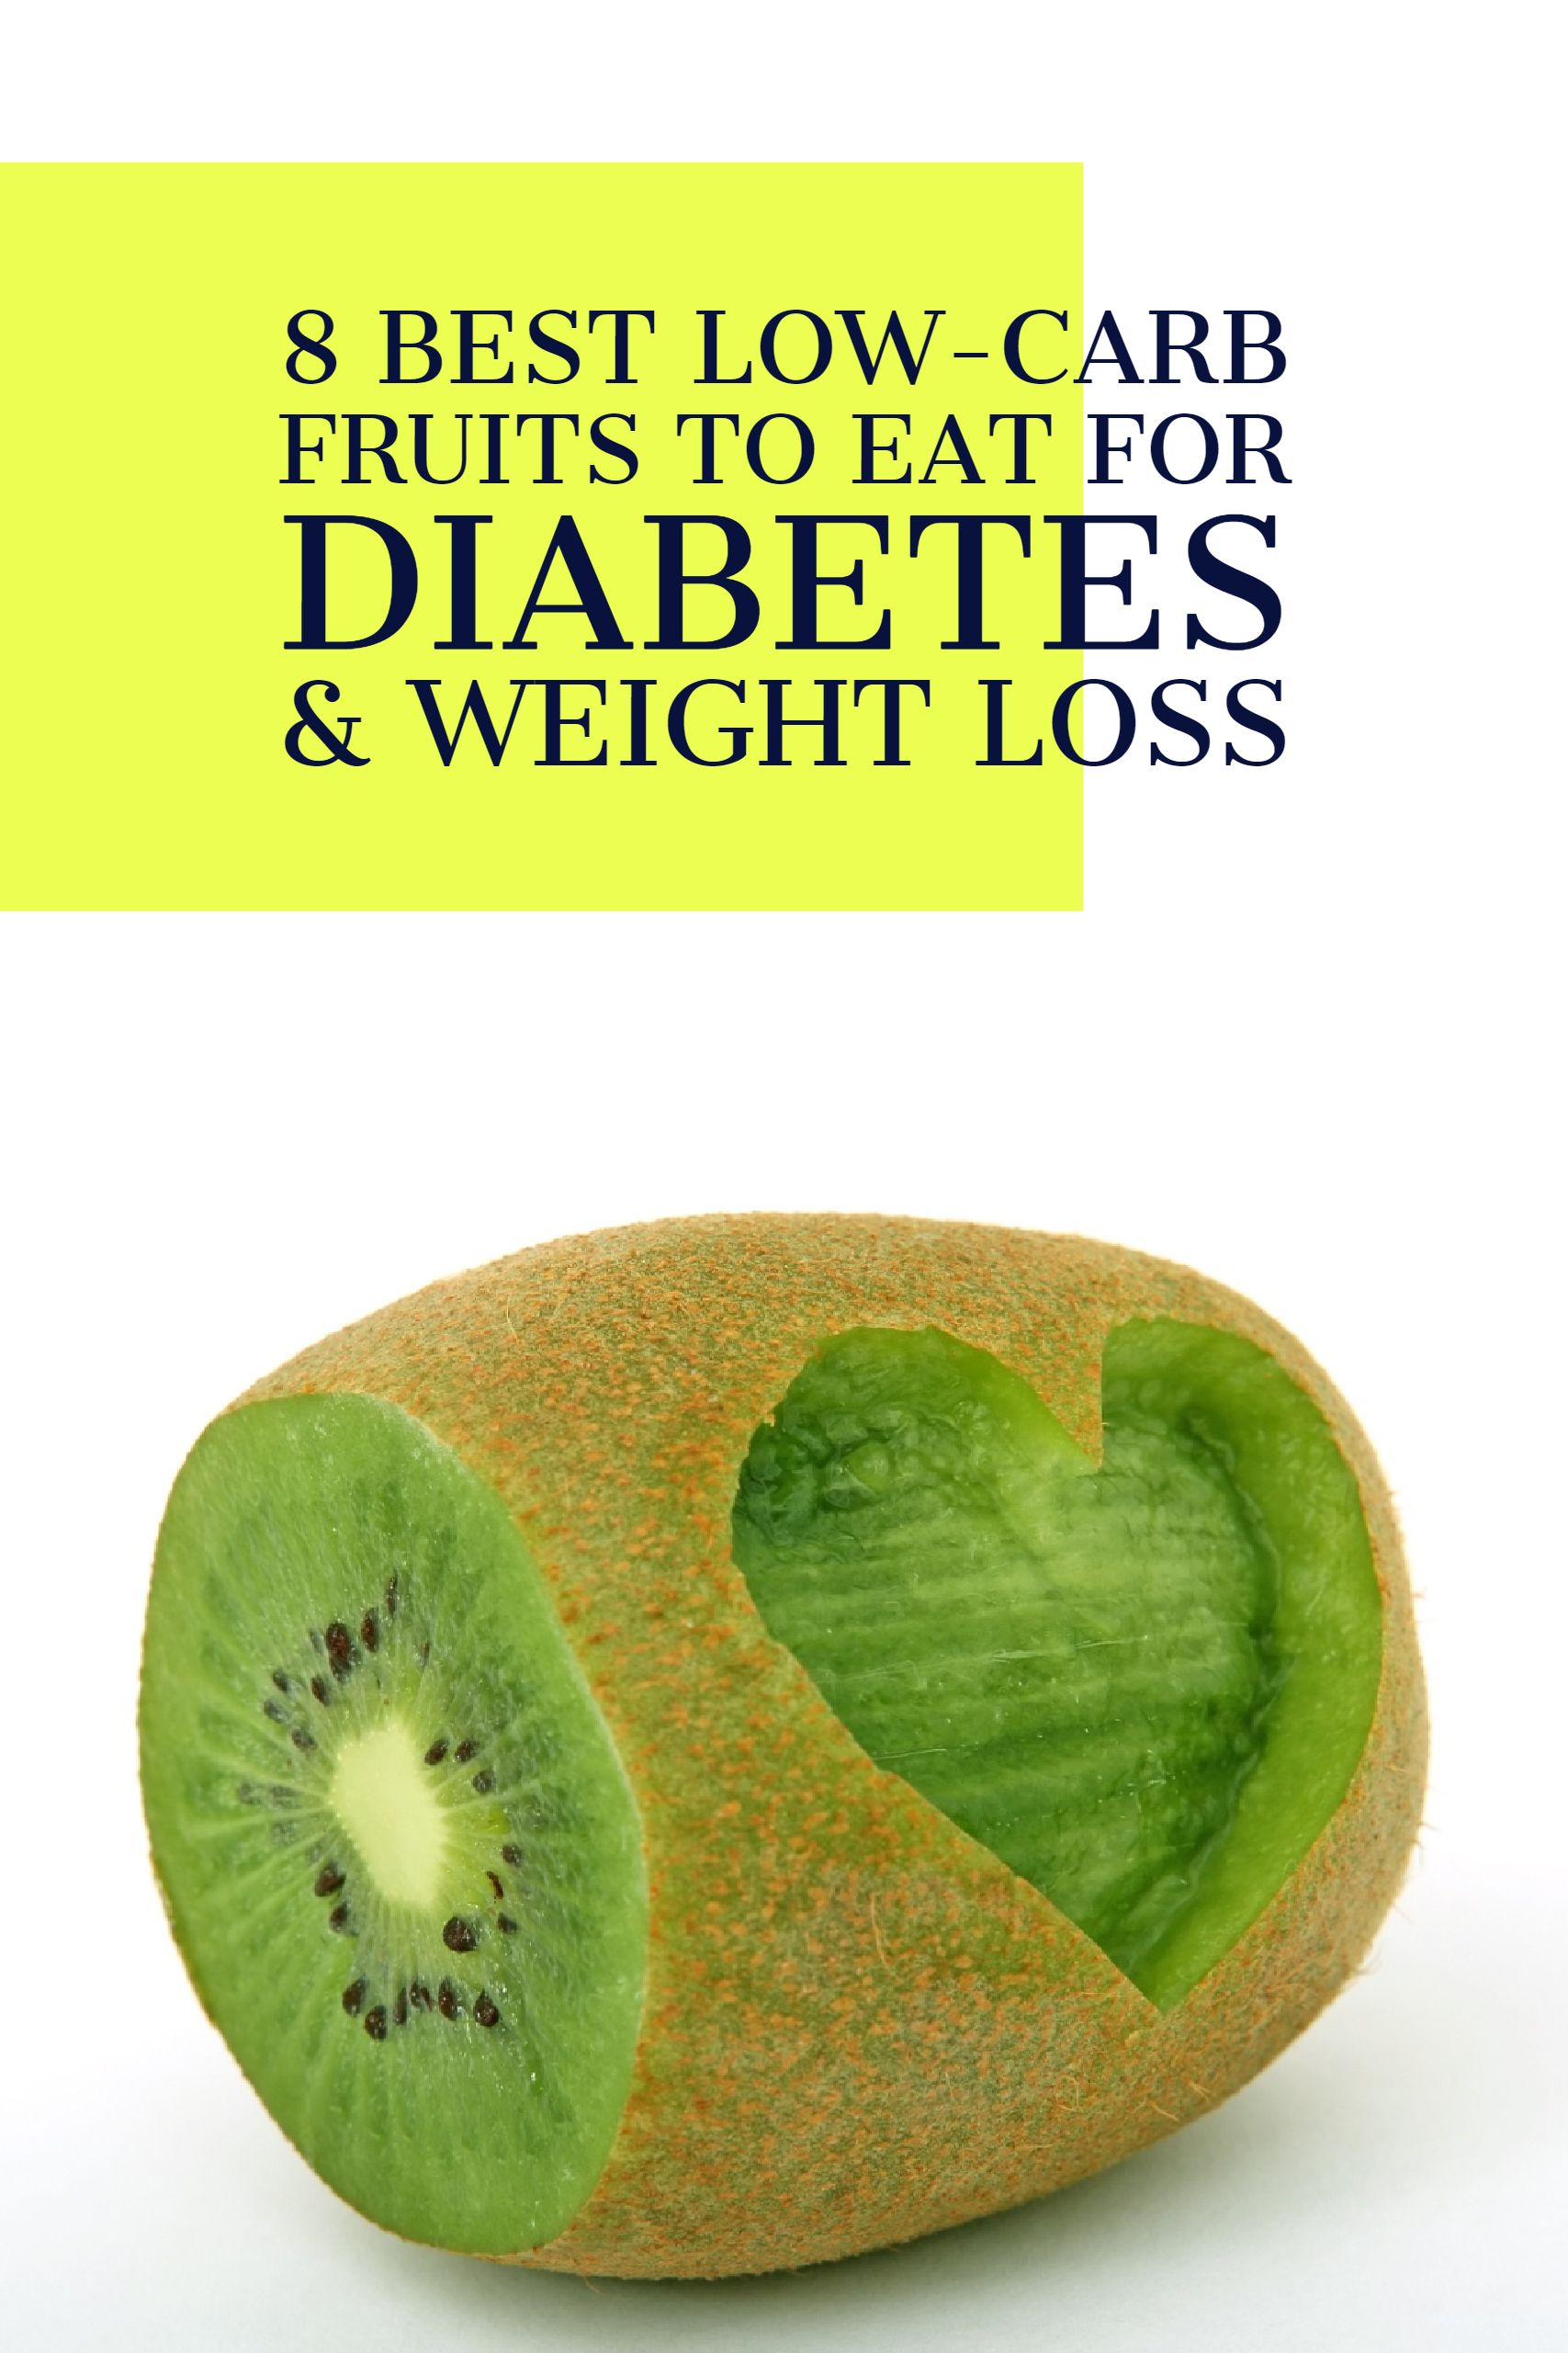 These are the best low-carb fruits to eat for diabetes and weight loss. Toss these into a diabetes-friendly smoothie or keep it simple and throw it into your bag to munch on while you're on the go. #diabetes #lowcarb #fruits #everydayhealth